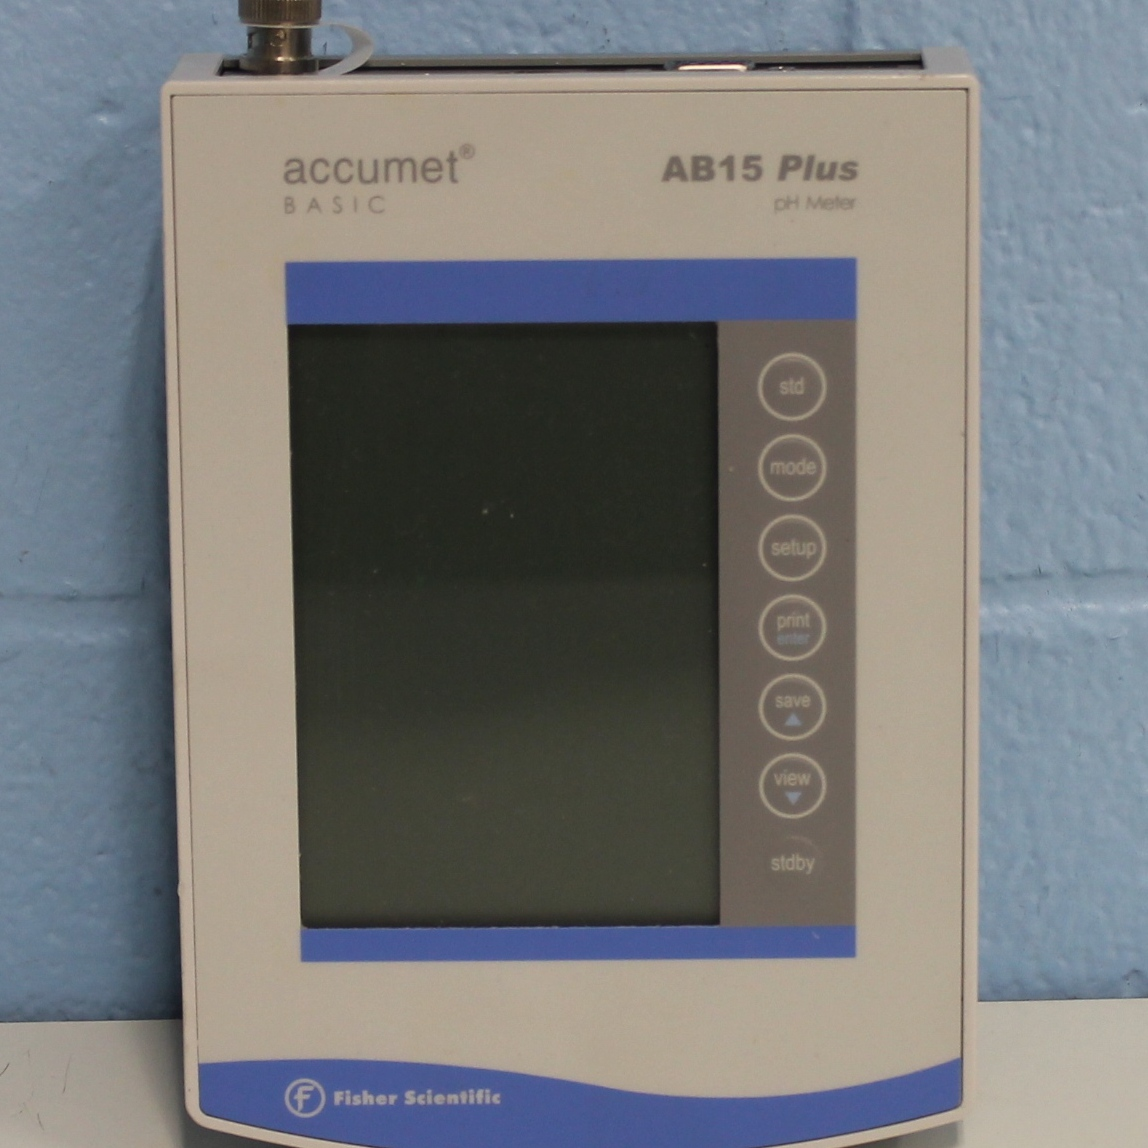 Fisher Scientific Accumet Basic AB15 Plus pH/mV/C Meter Image